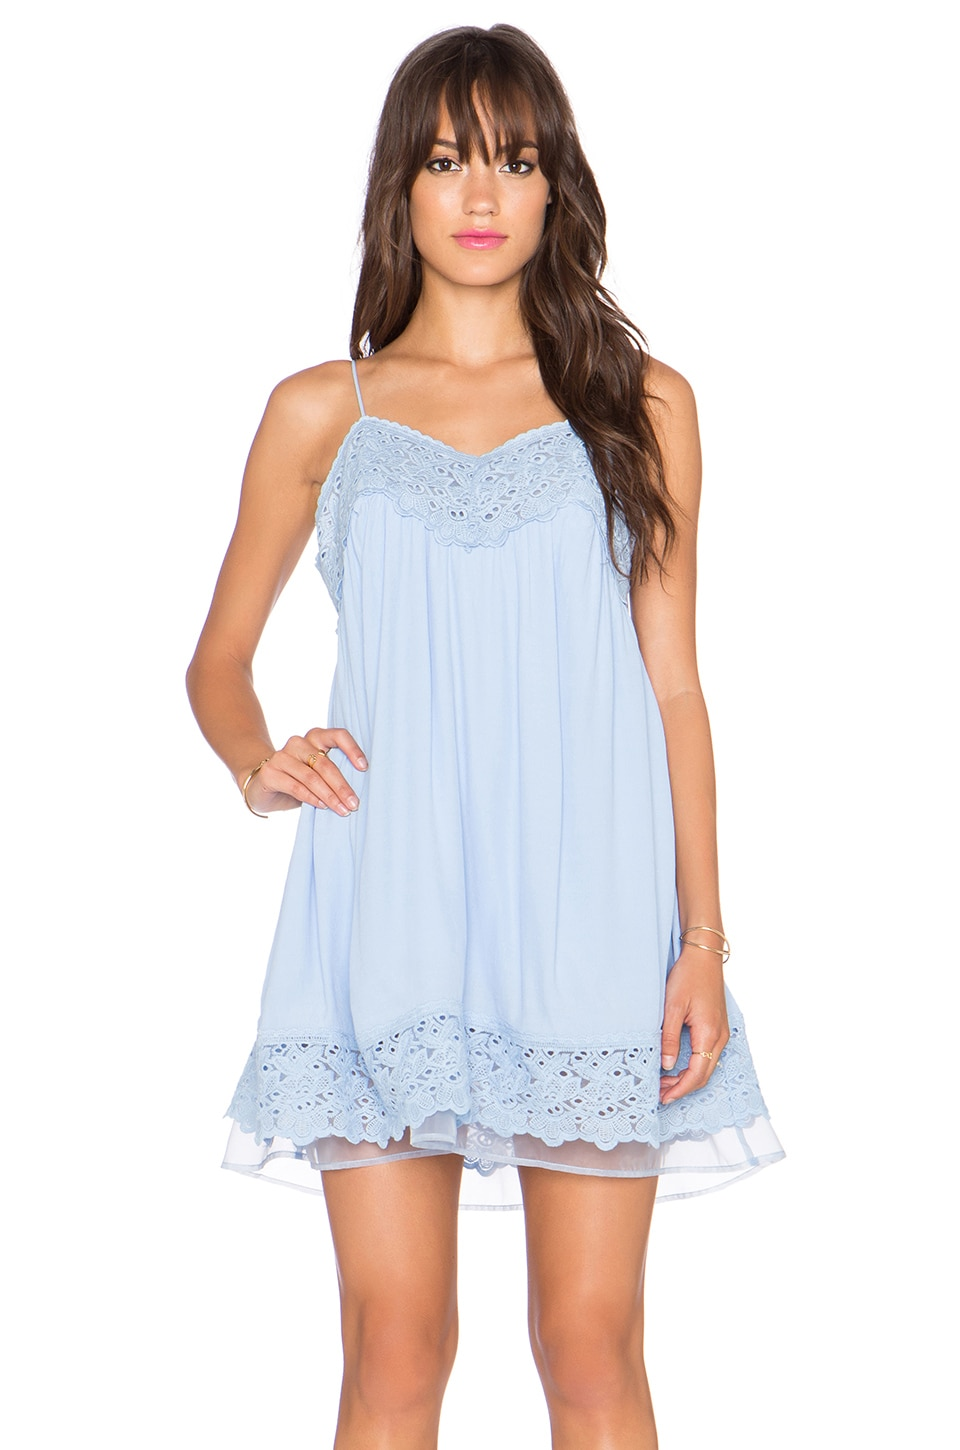 J.O.A. Lace Shift Dress in Baby Blue